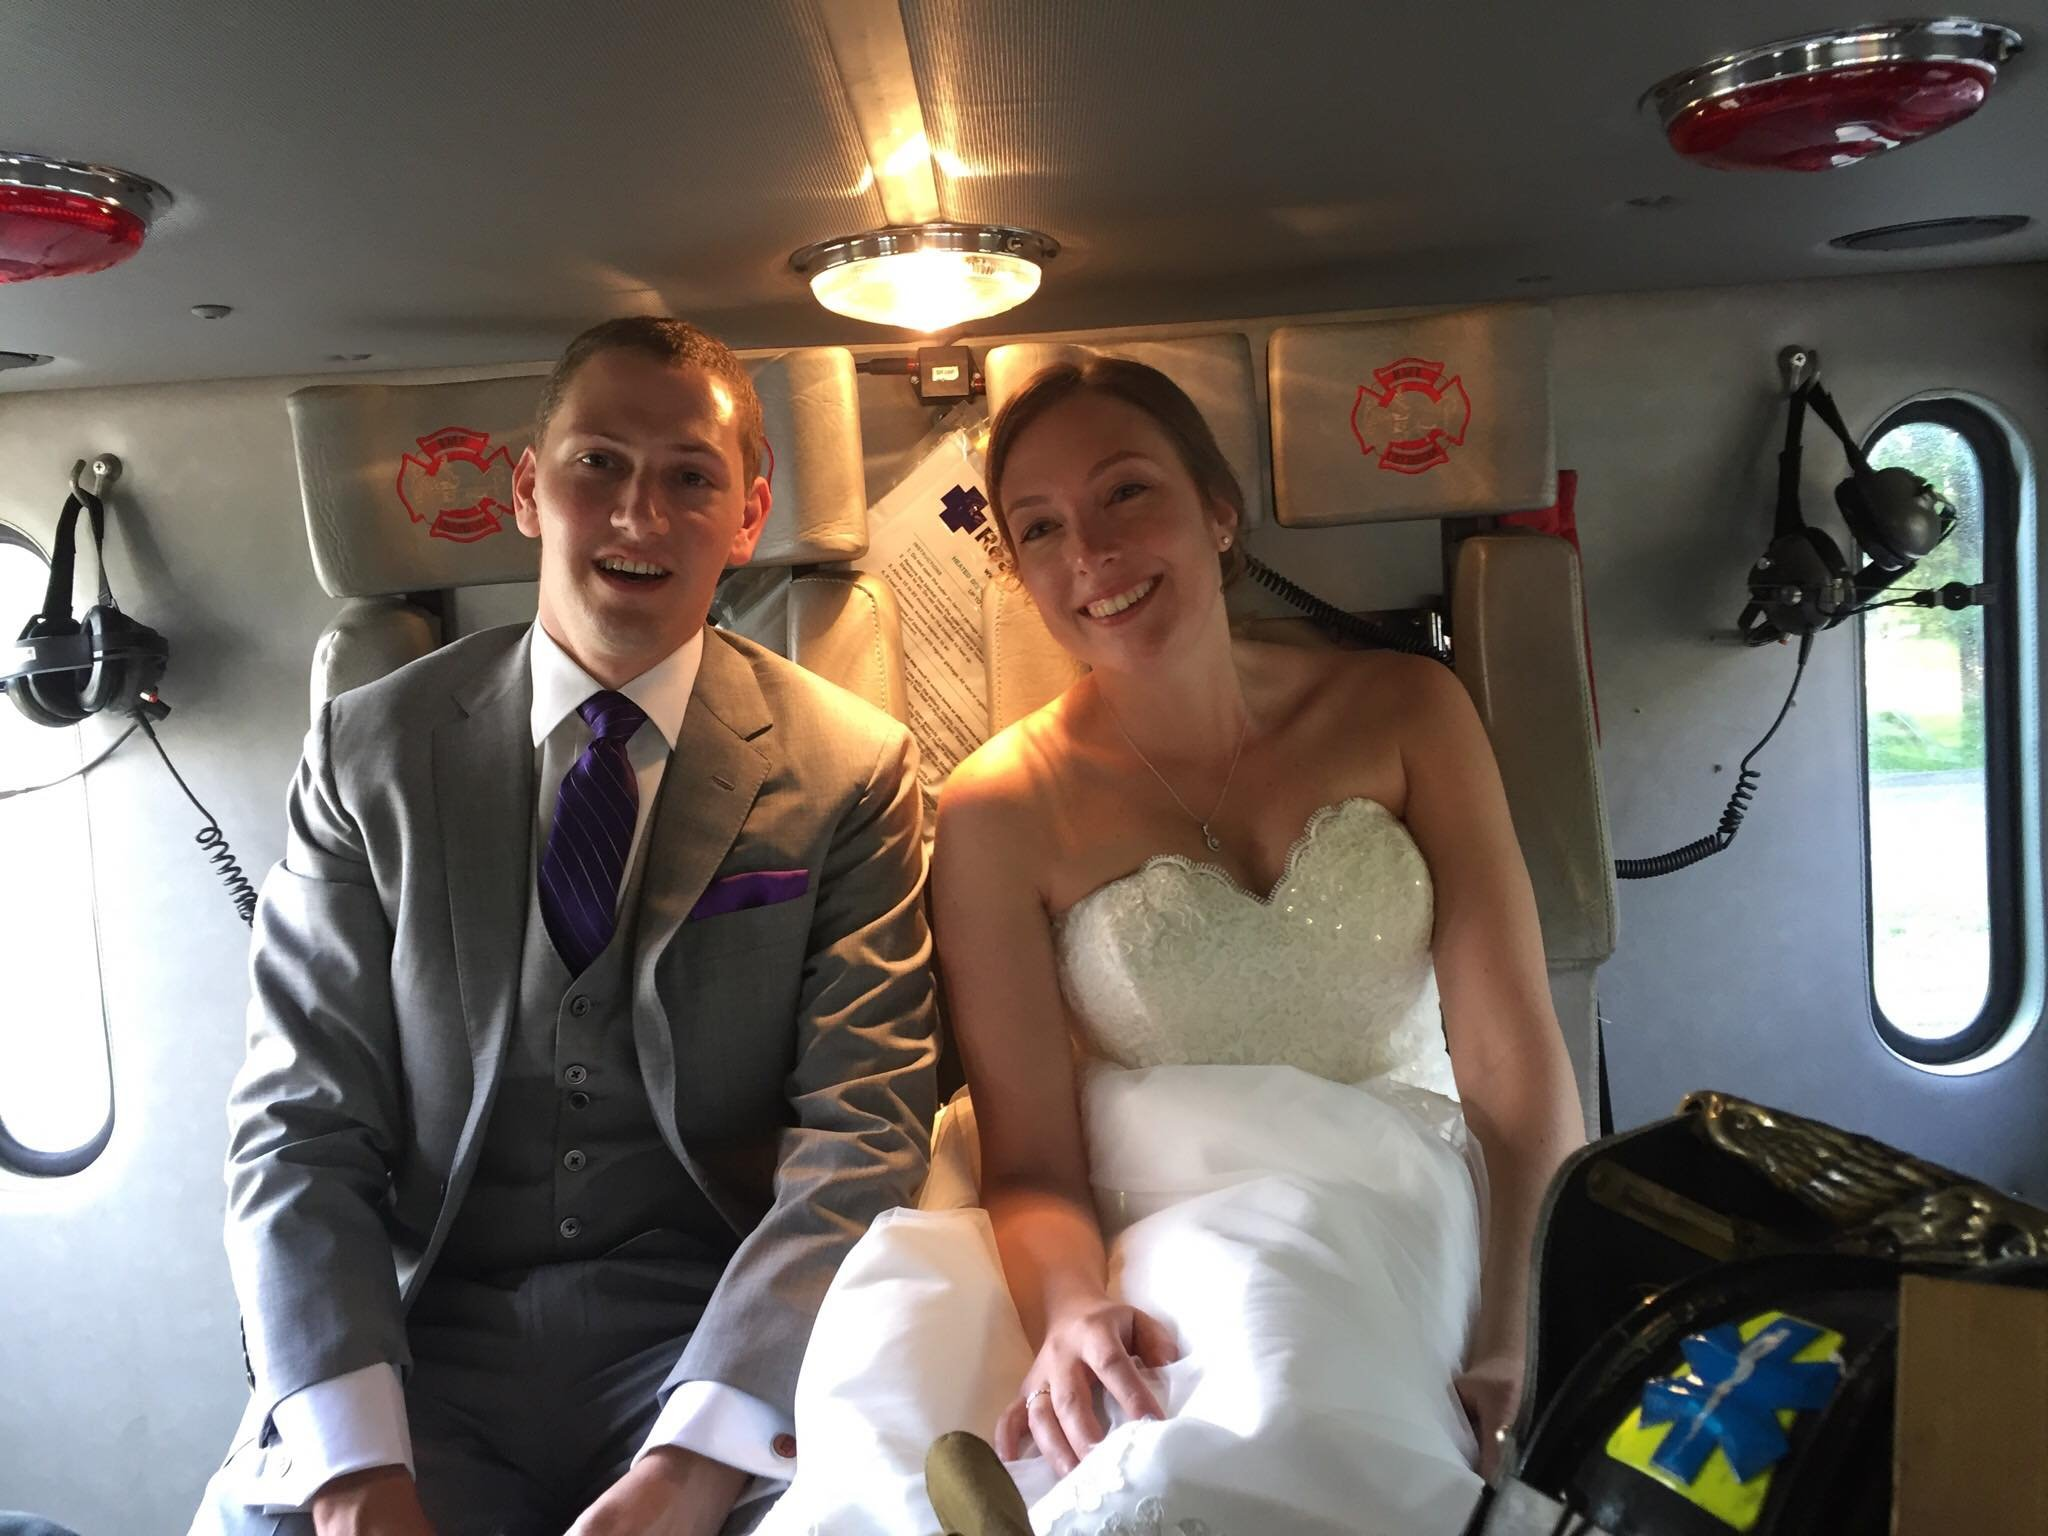 Firefighters help bride and groom get to wedding reception